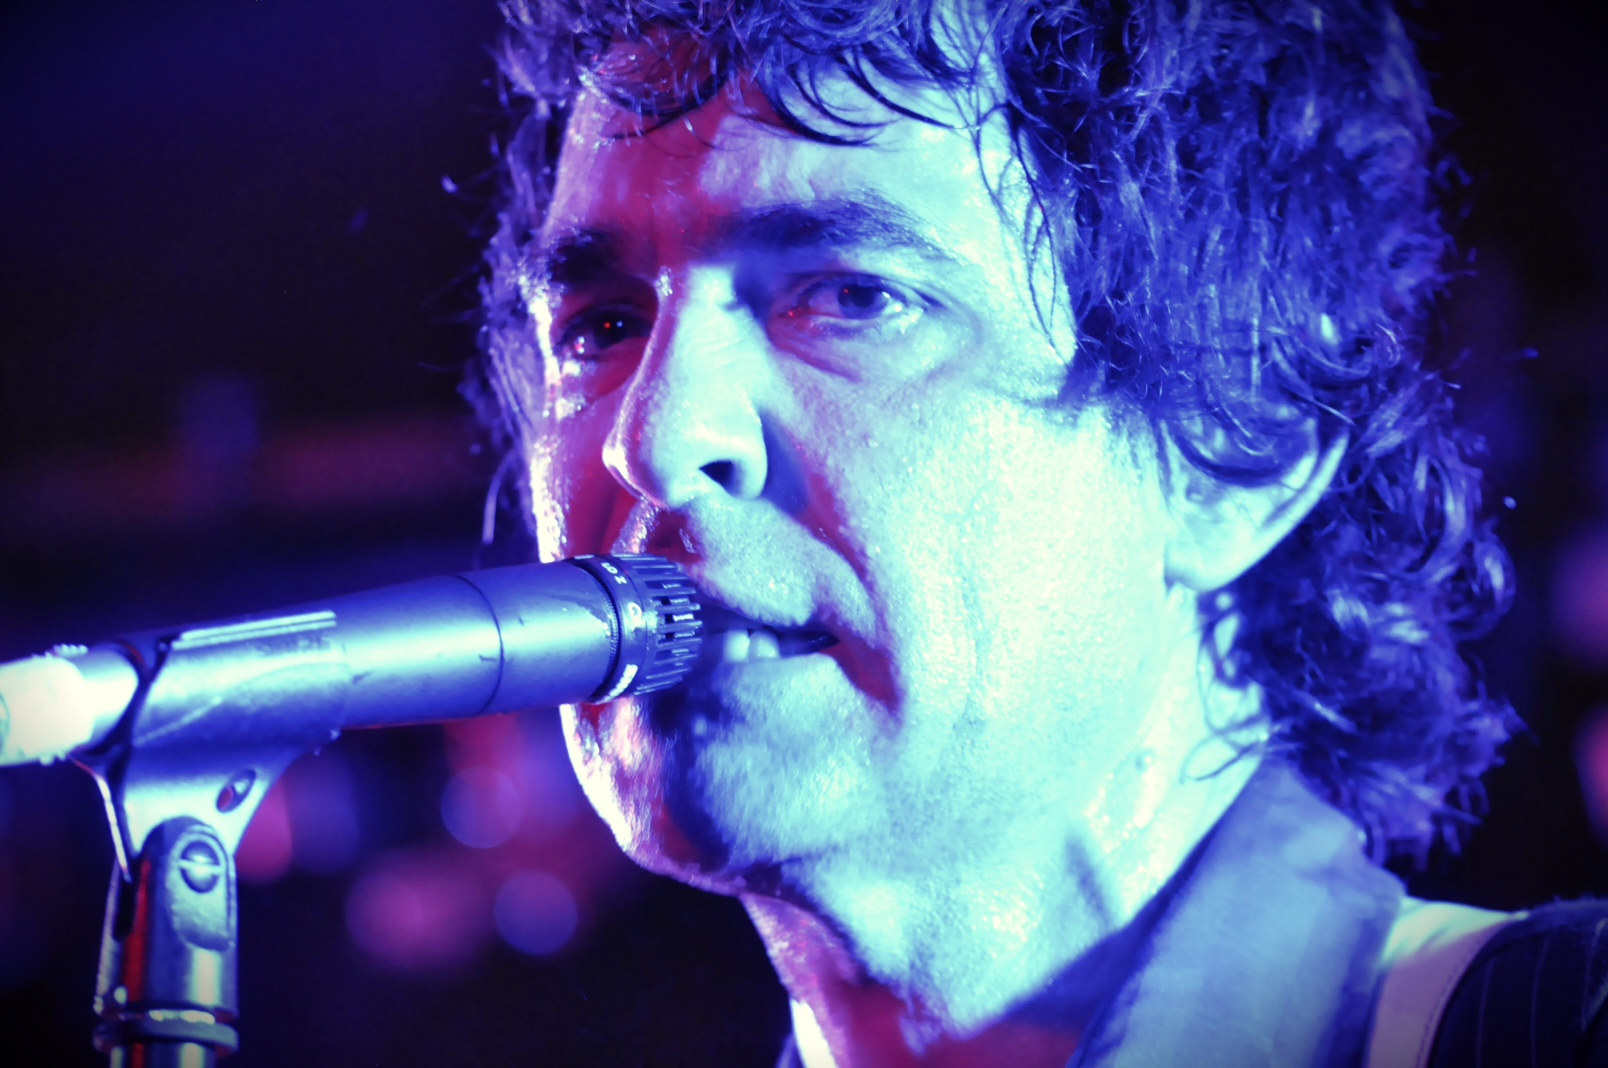 Resenha e fotos: The Jon Spencer Blues Explosion em Dublin (11/05/14)